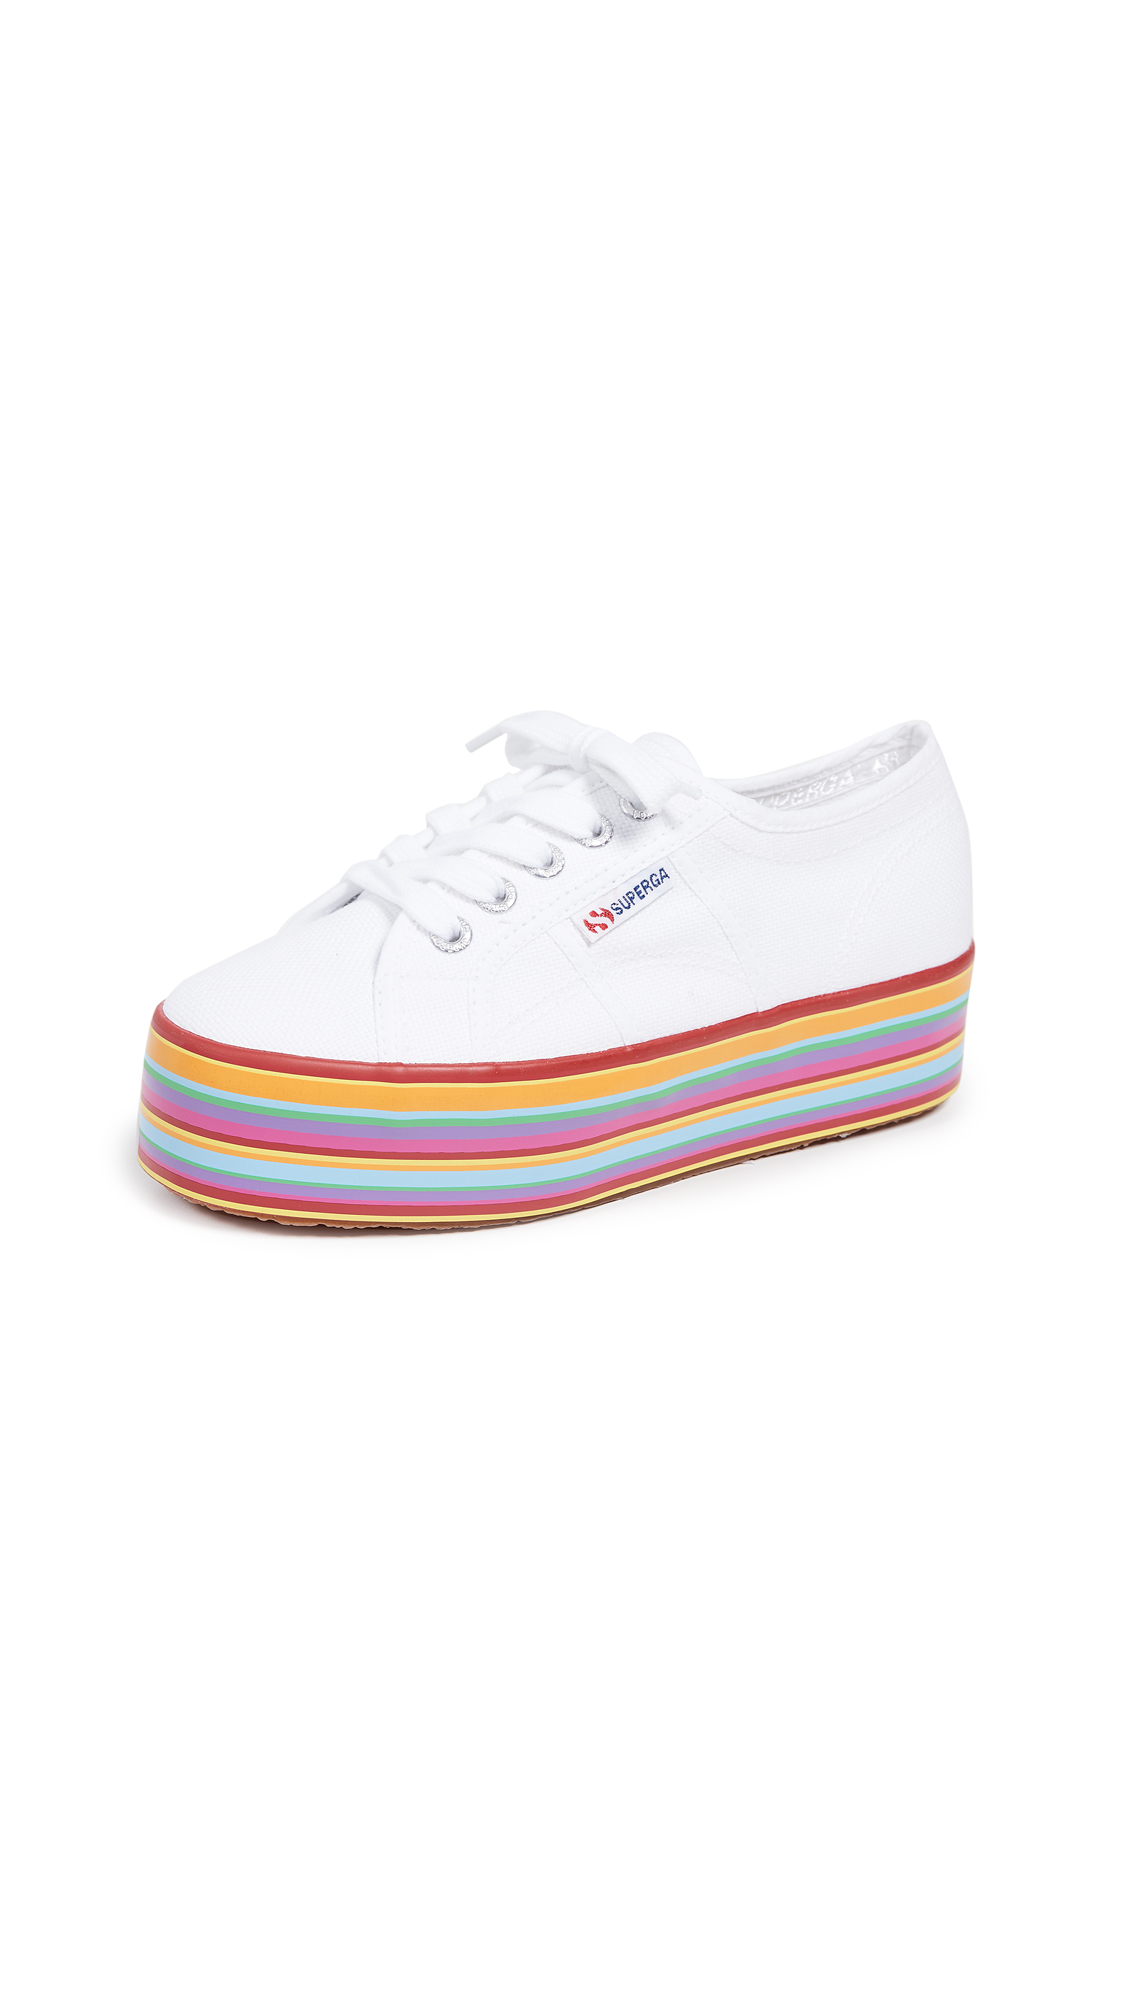 Superga Multicolored Platform Sneakers - White Multi